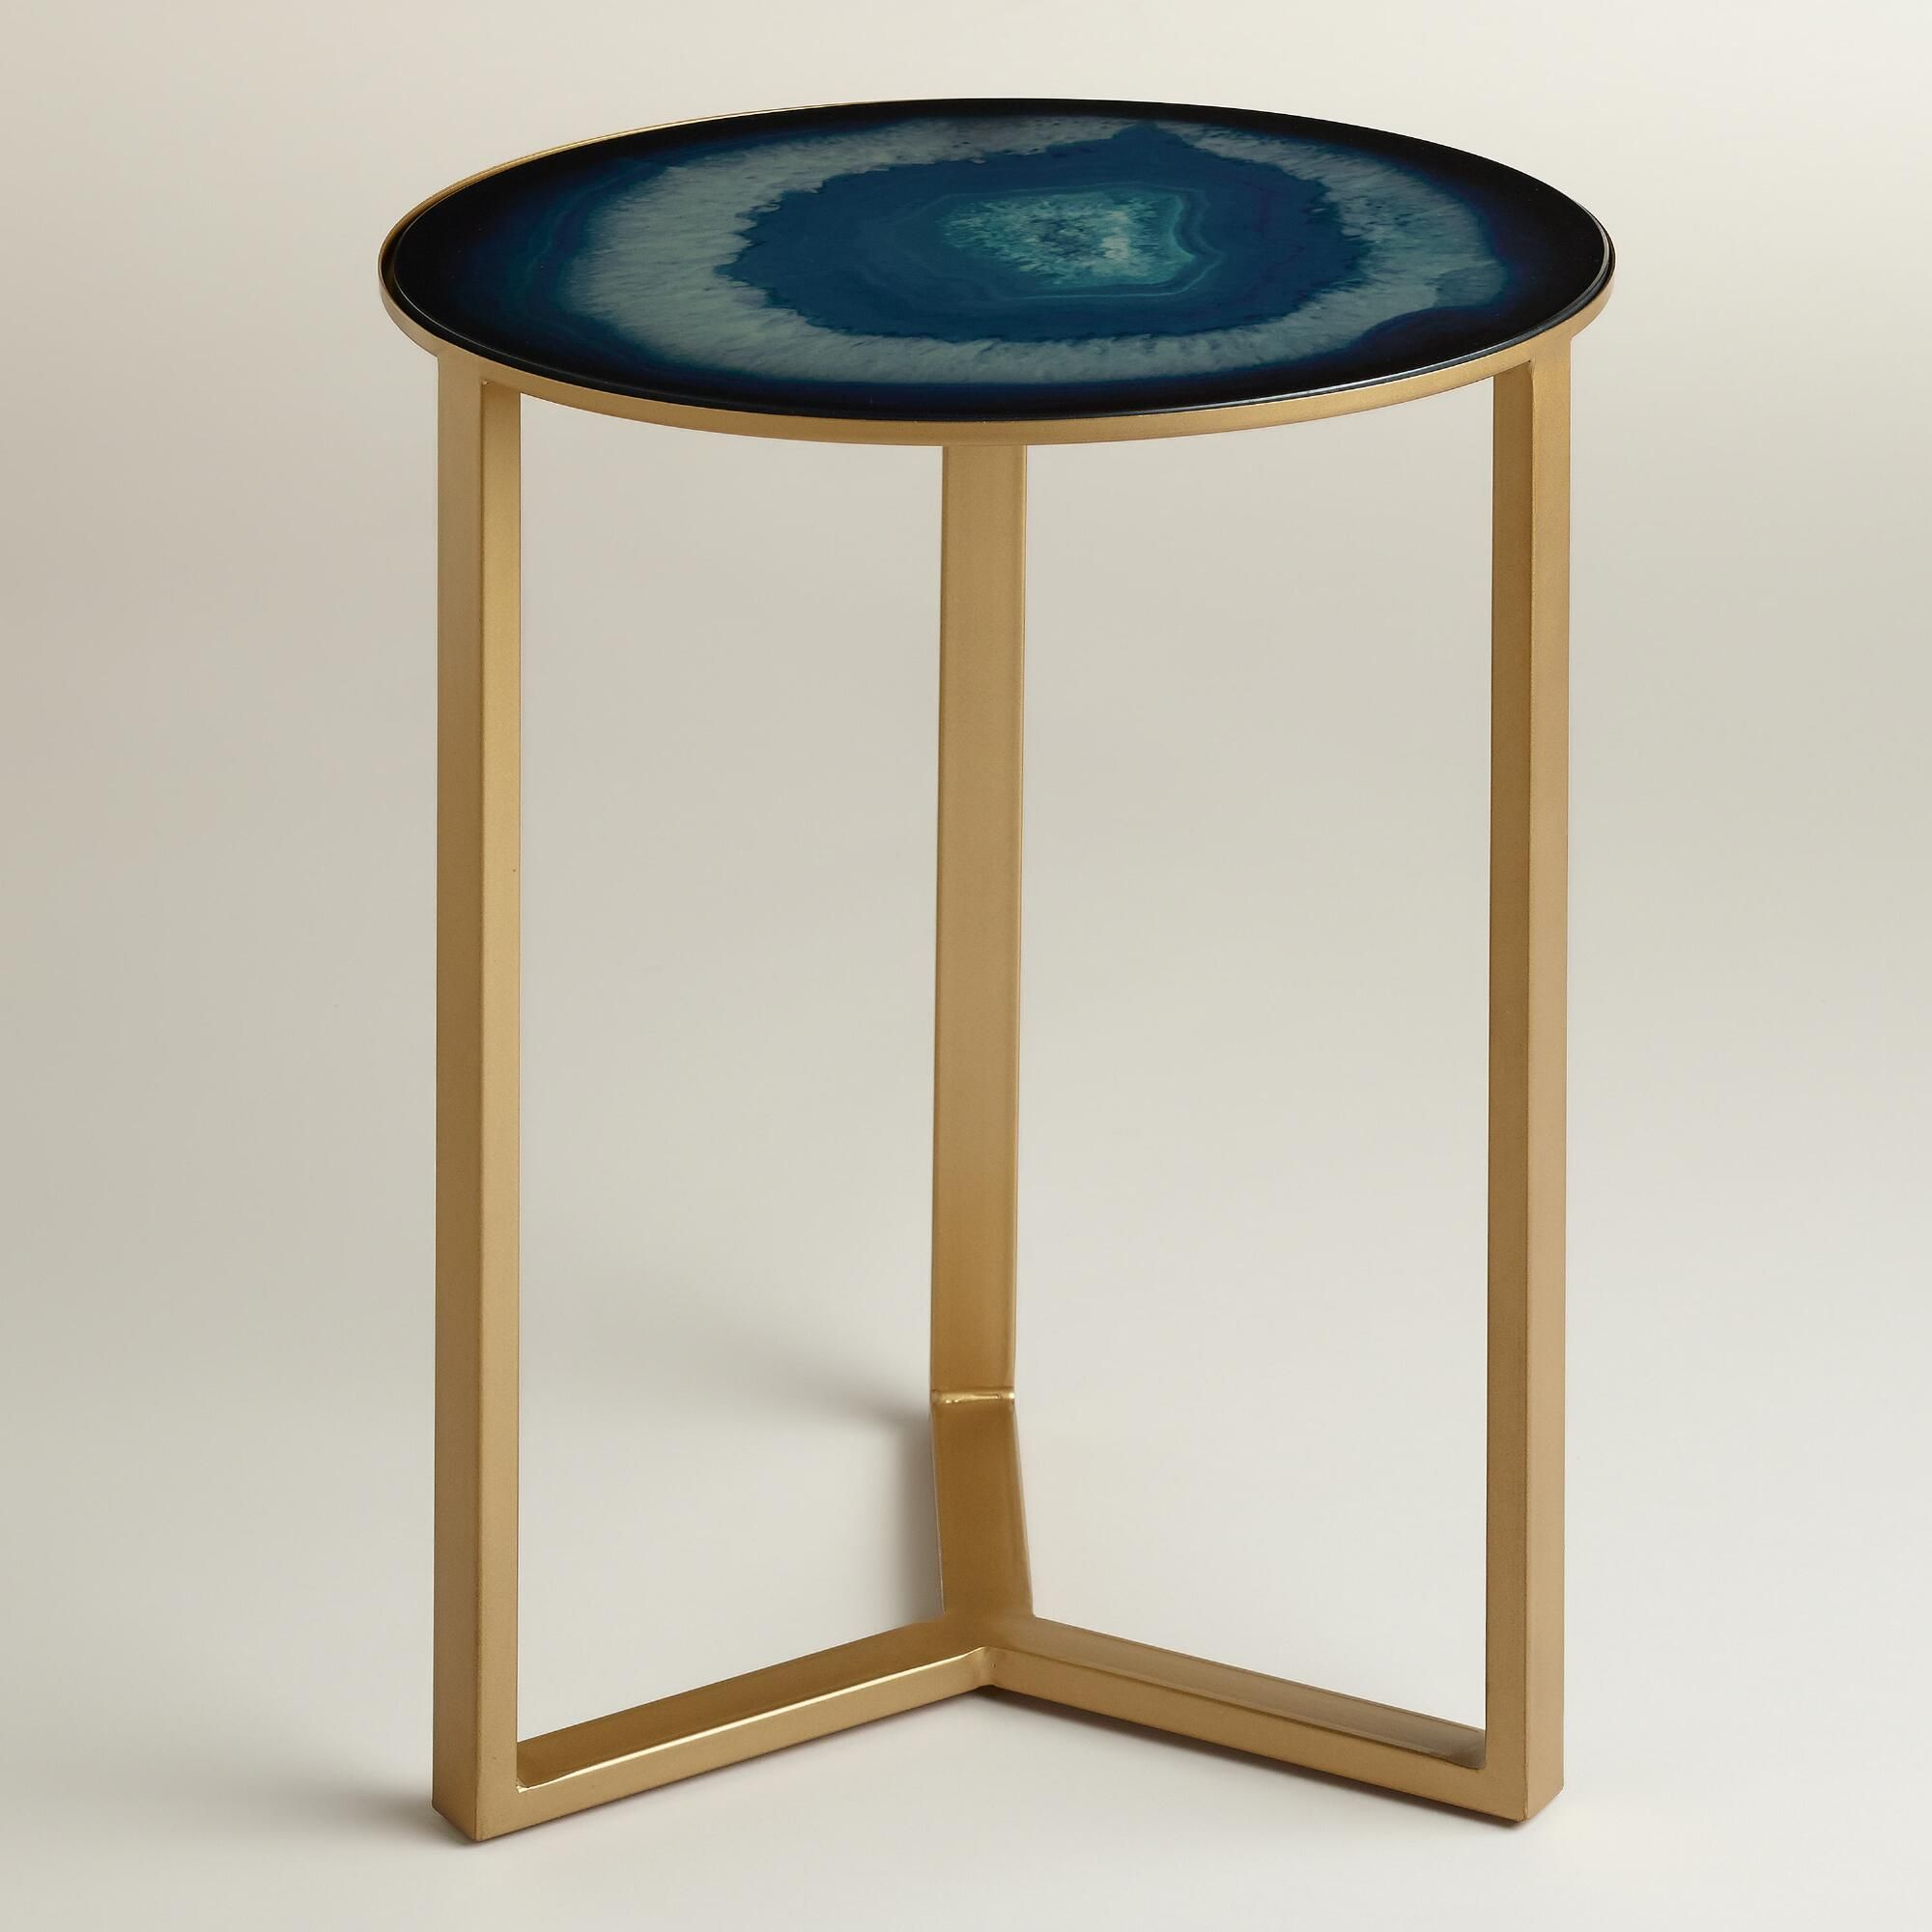 Our sleek table features a gold-finished three-legged metal frame ...